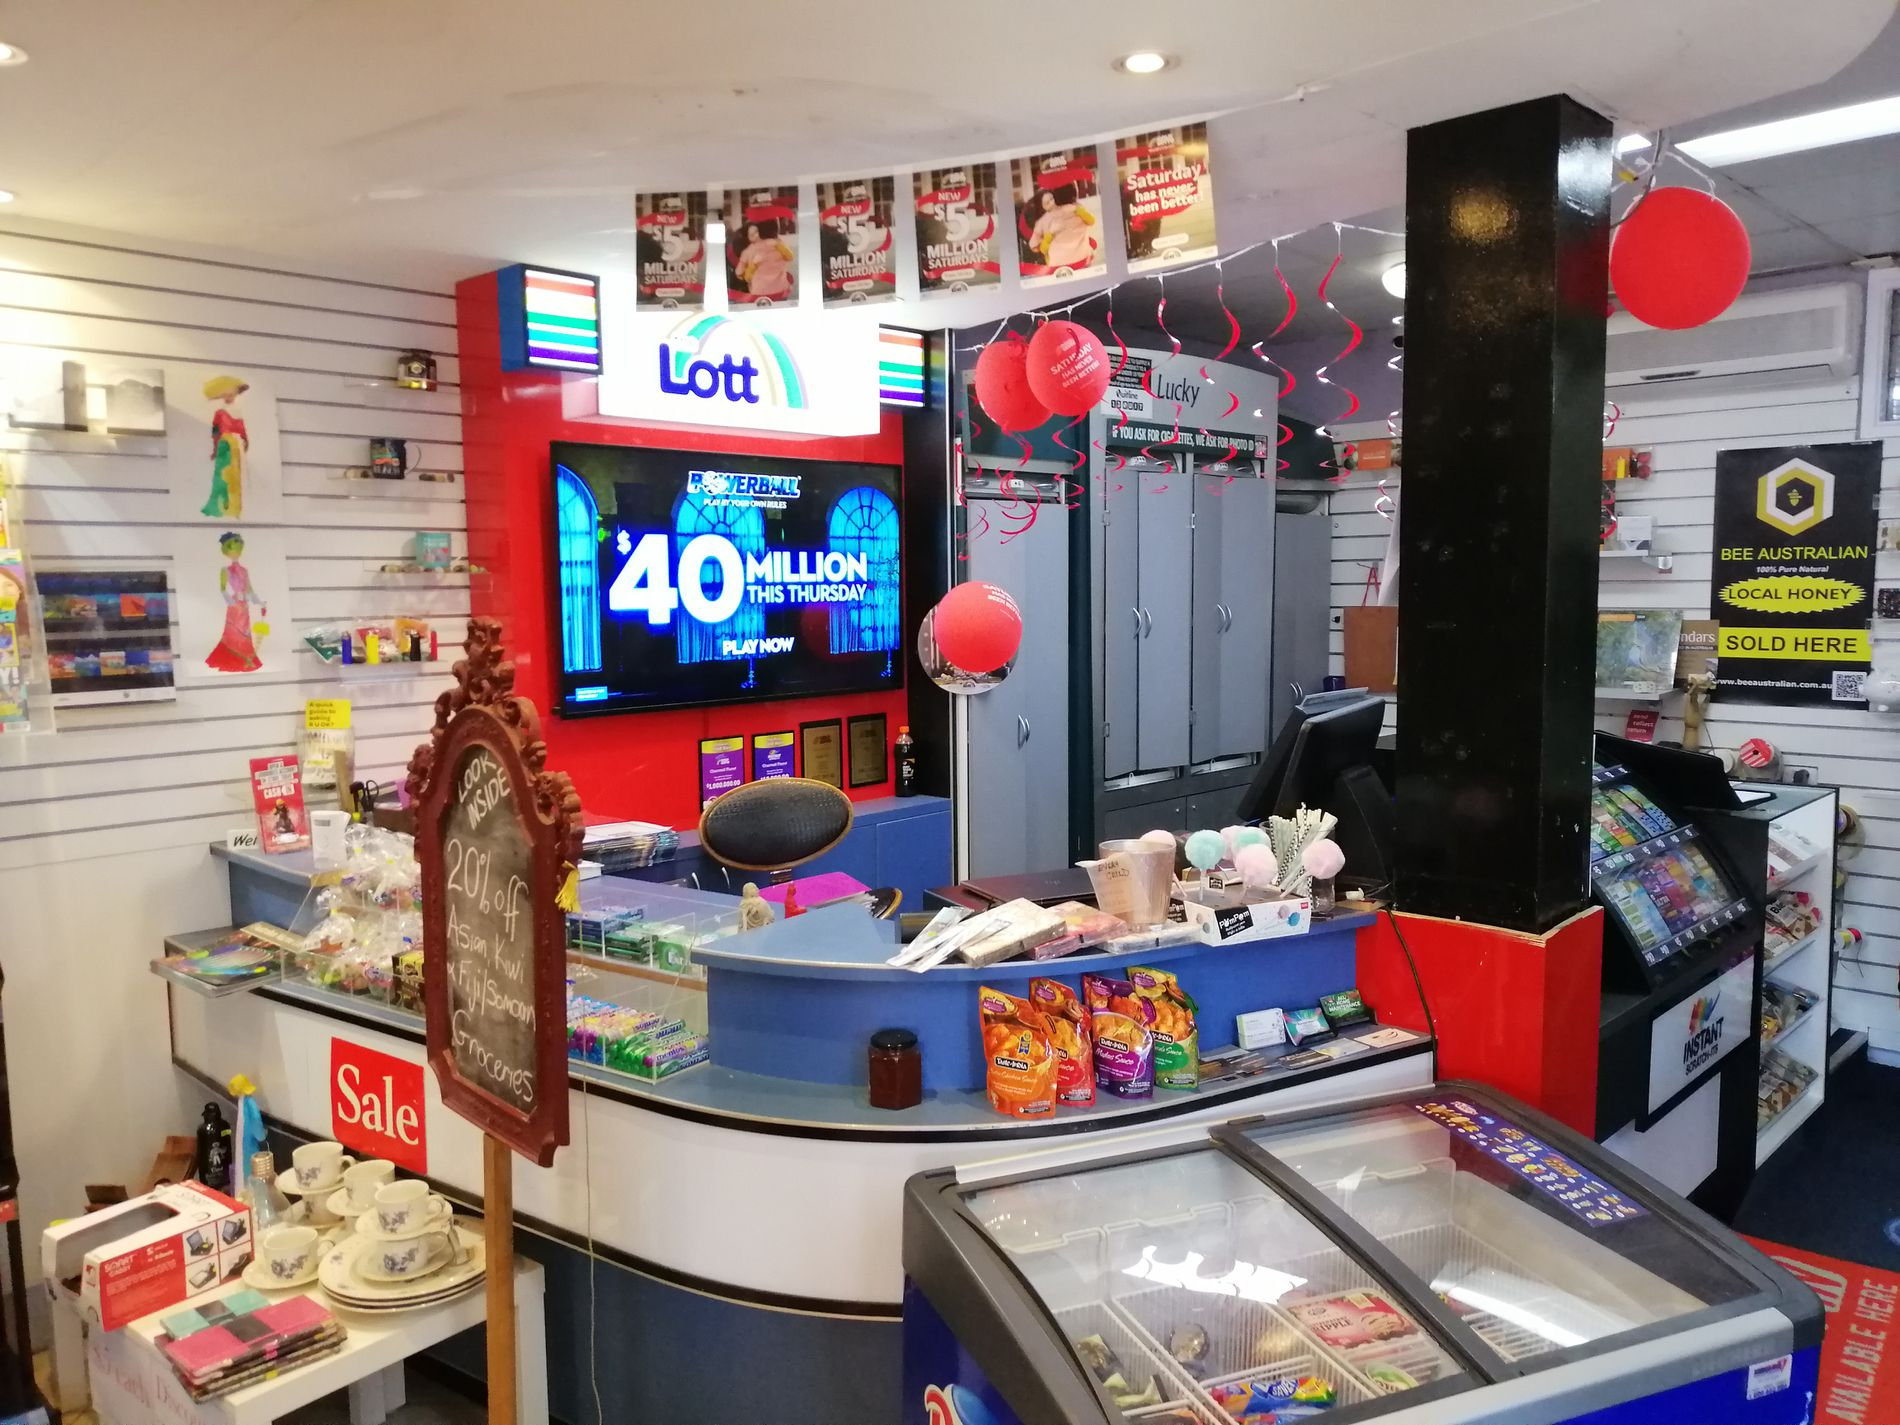 News Agency & Gold Lotto Redcliffe